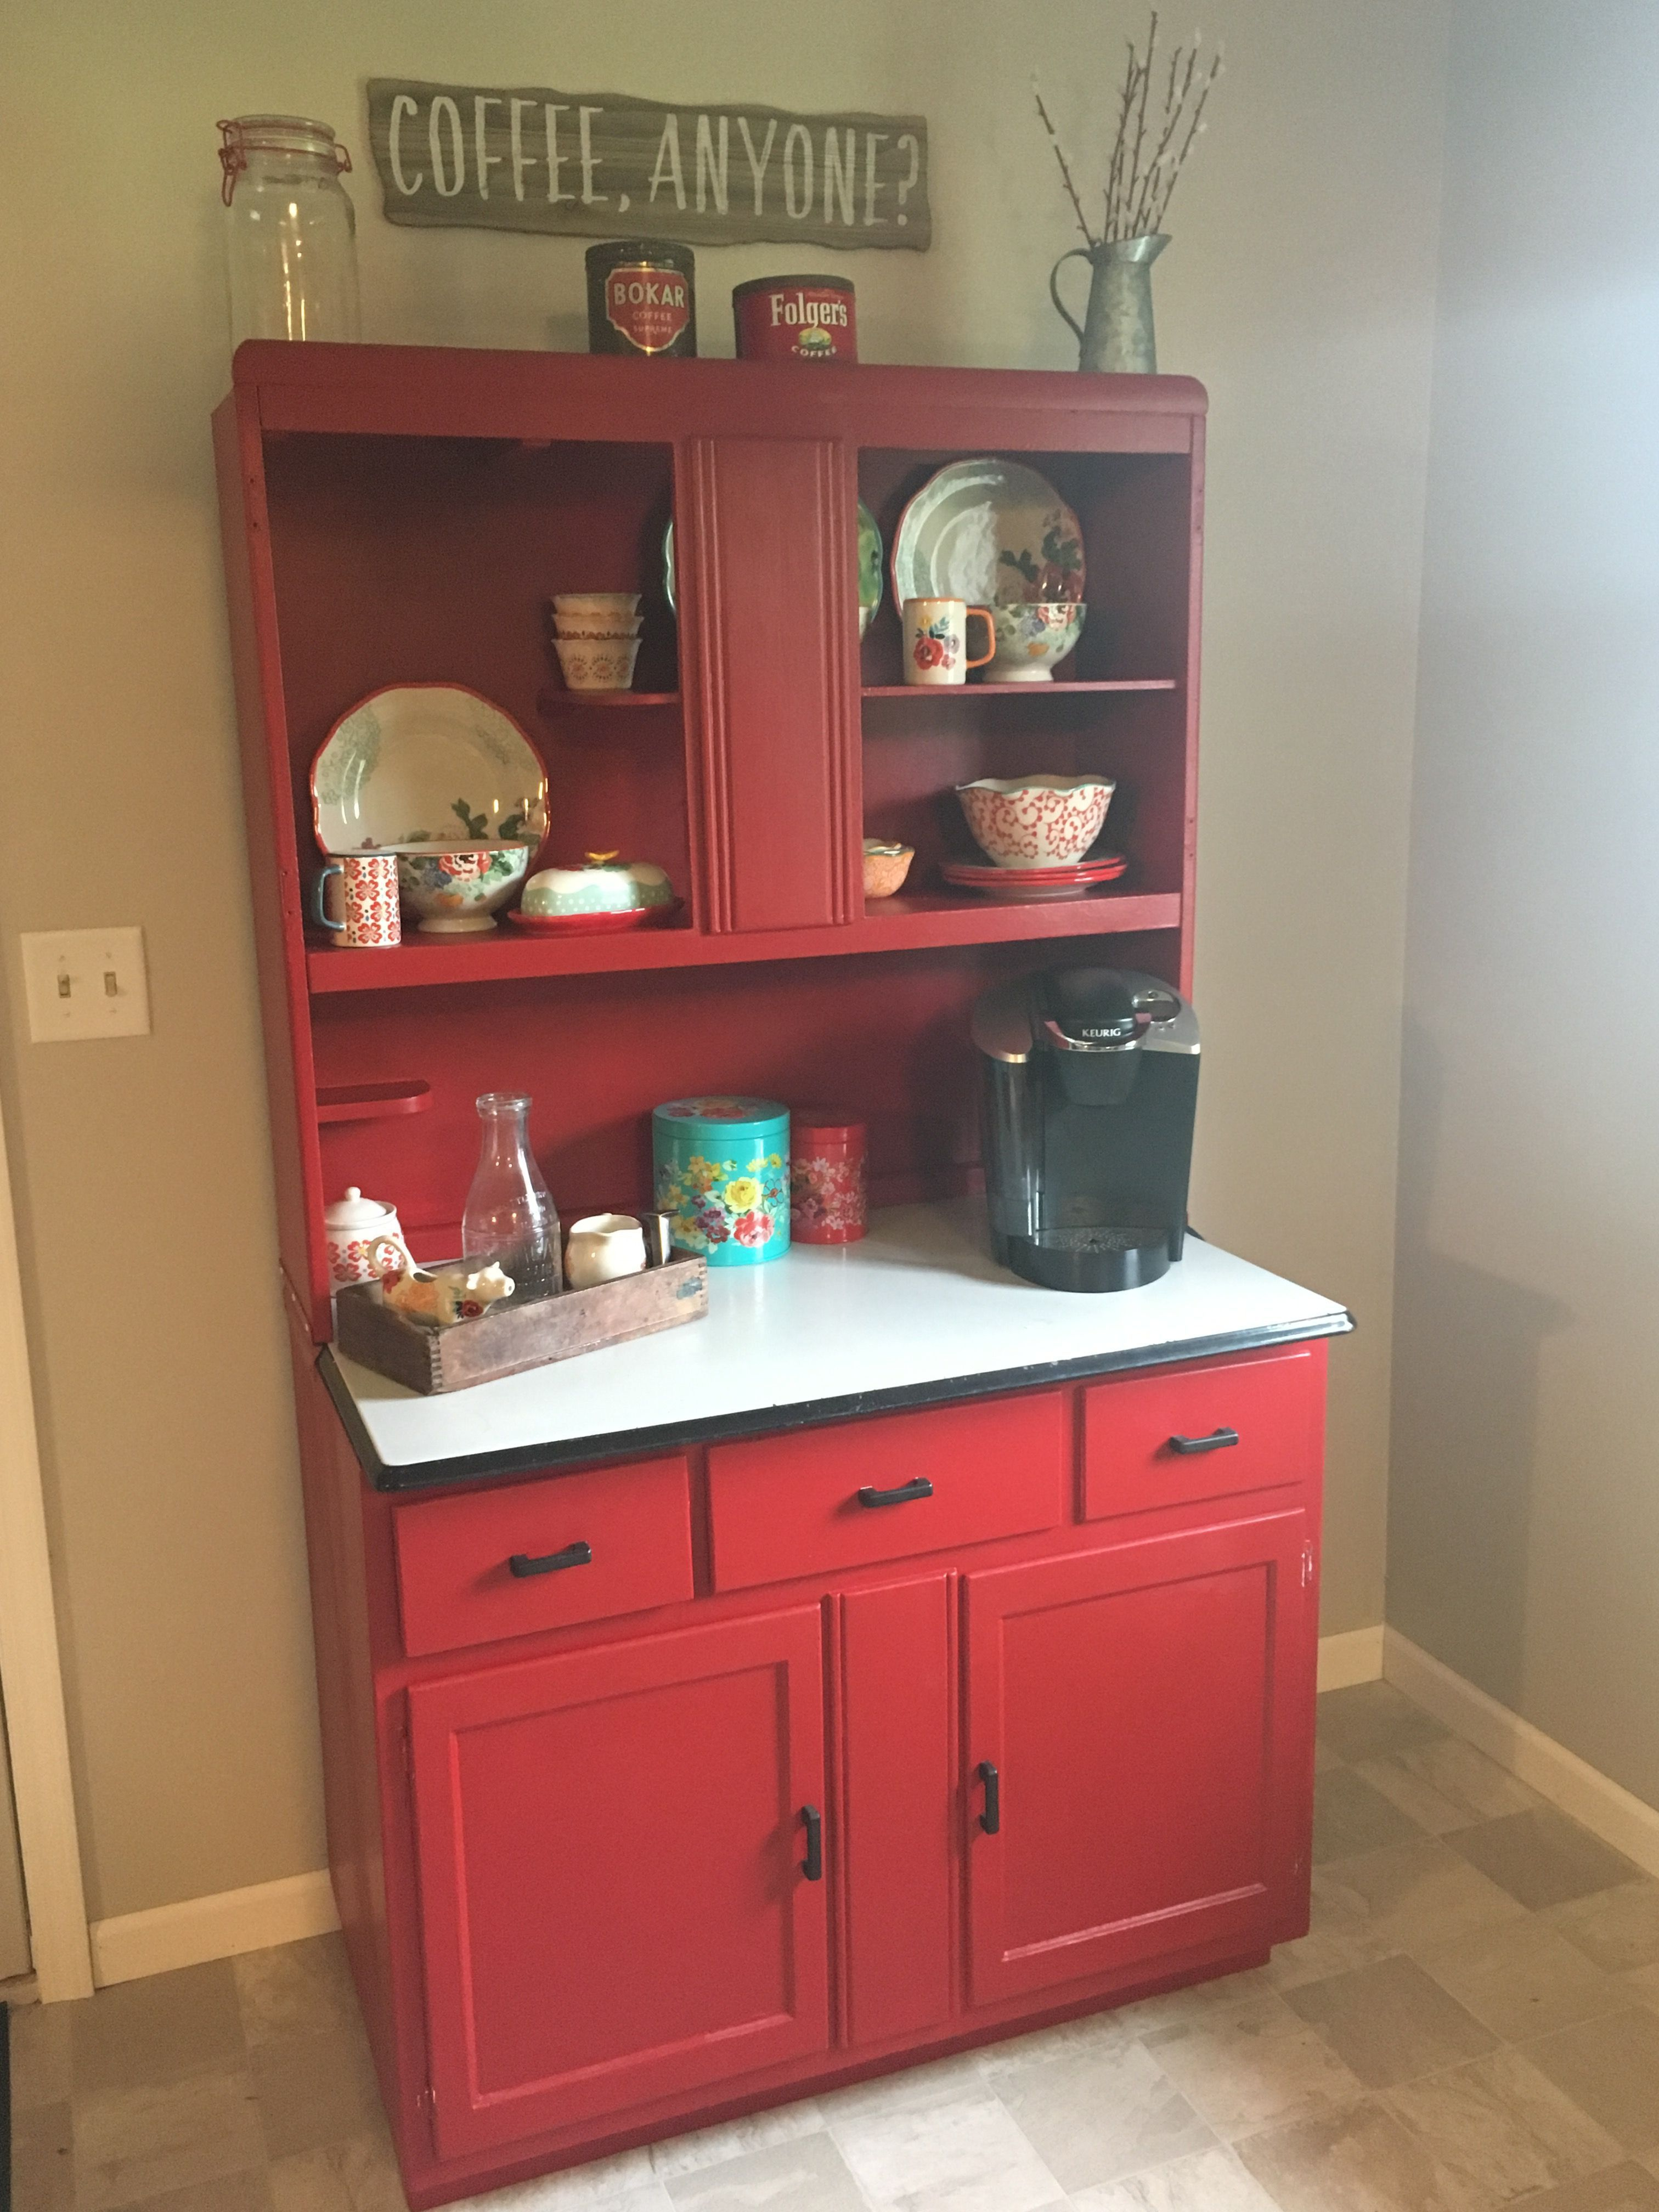 24 Incomparable Farmhouse Coffee Bar Cabinet You Have To Copy Bar Cabinet Coffee Copy Far Farmhouse Coffee Bar Coffee Bar Home Coffee Bars In Kitchen